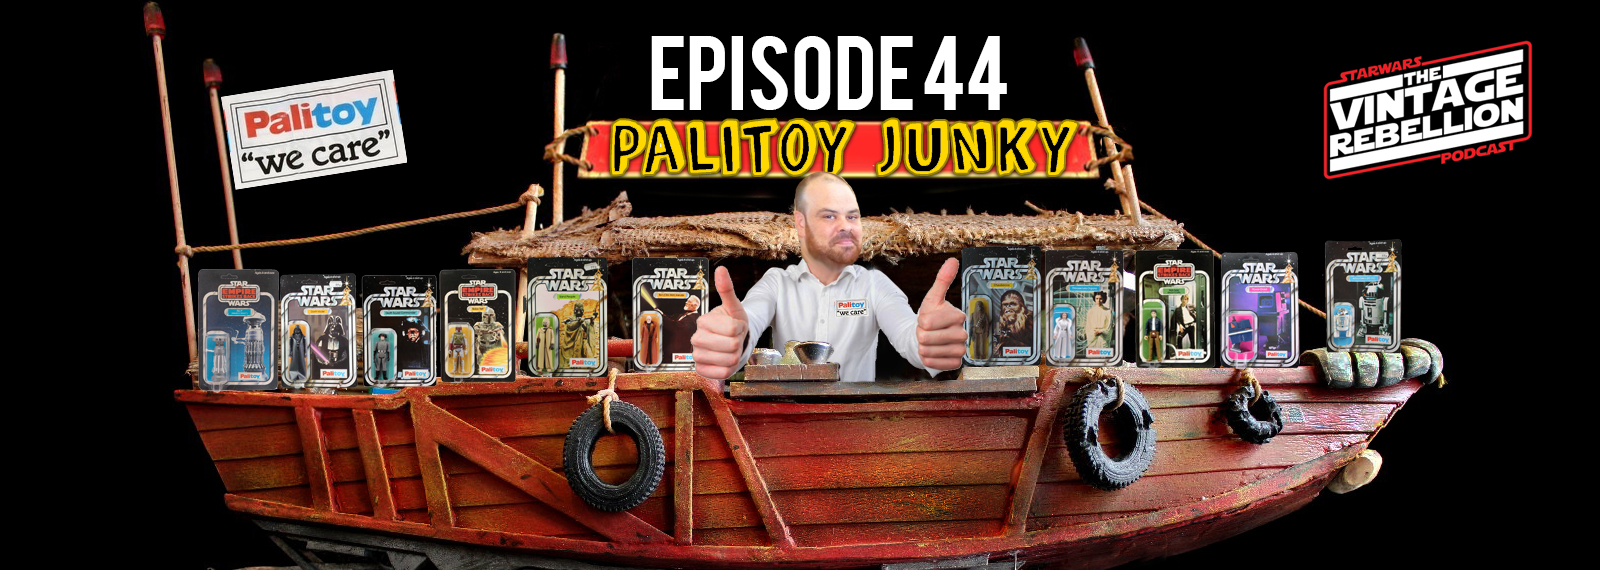 Episode 44 : Palitoy Junky